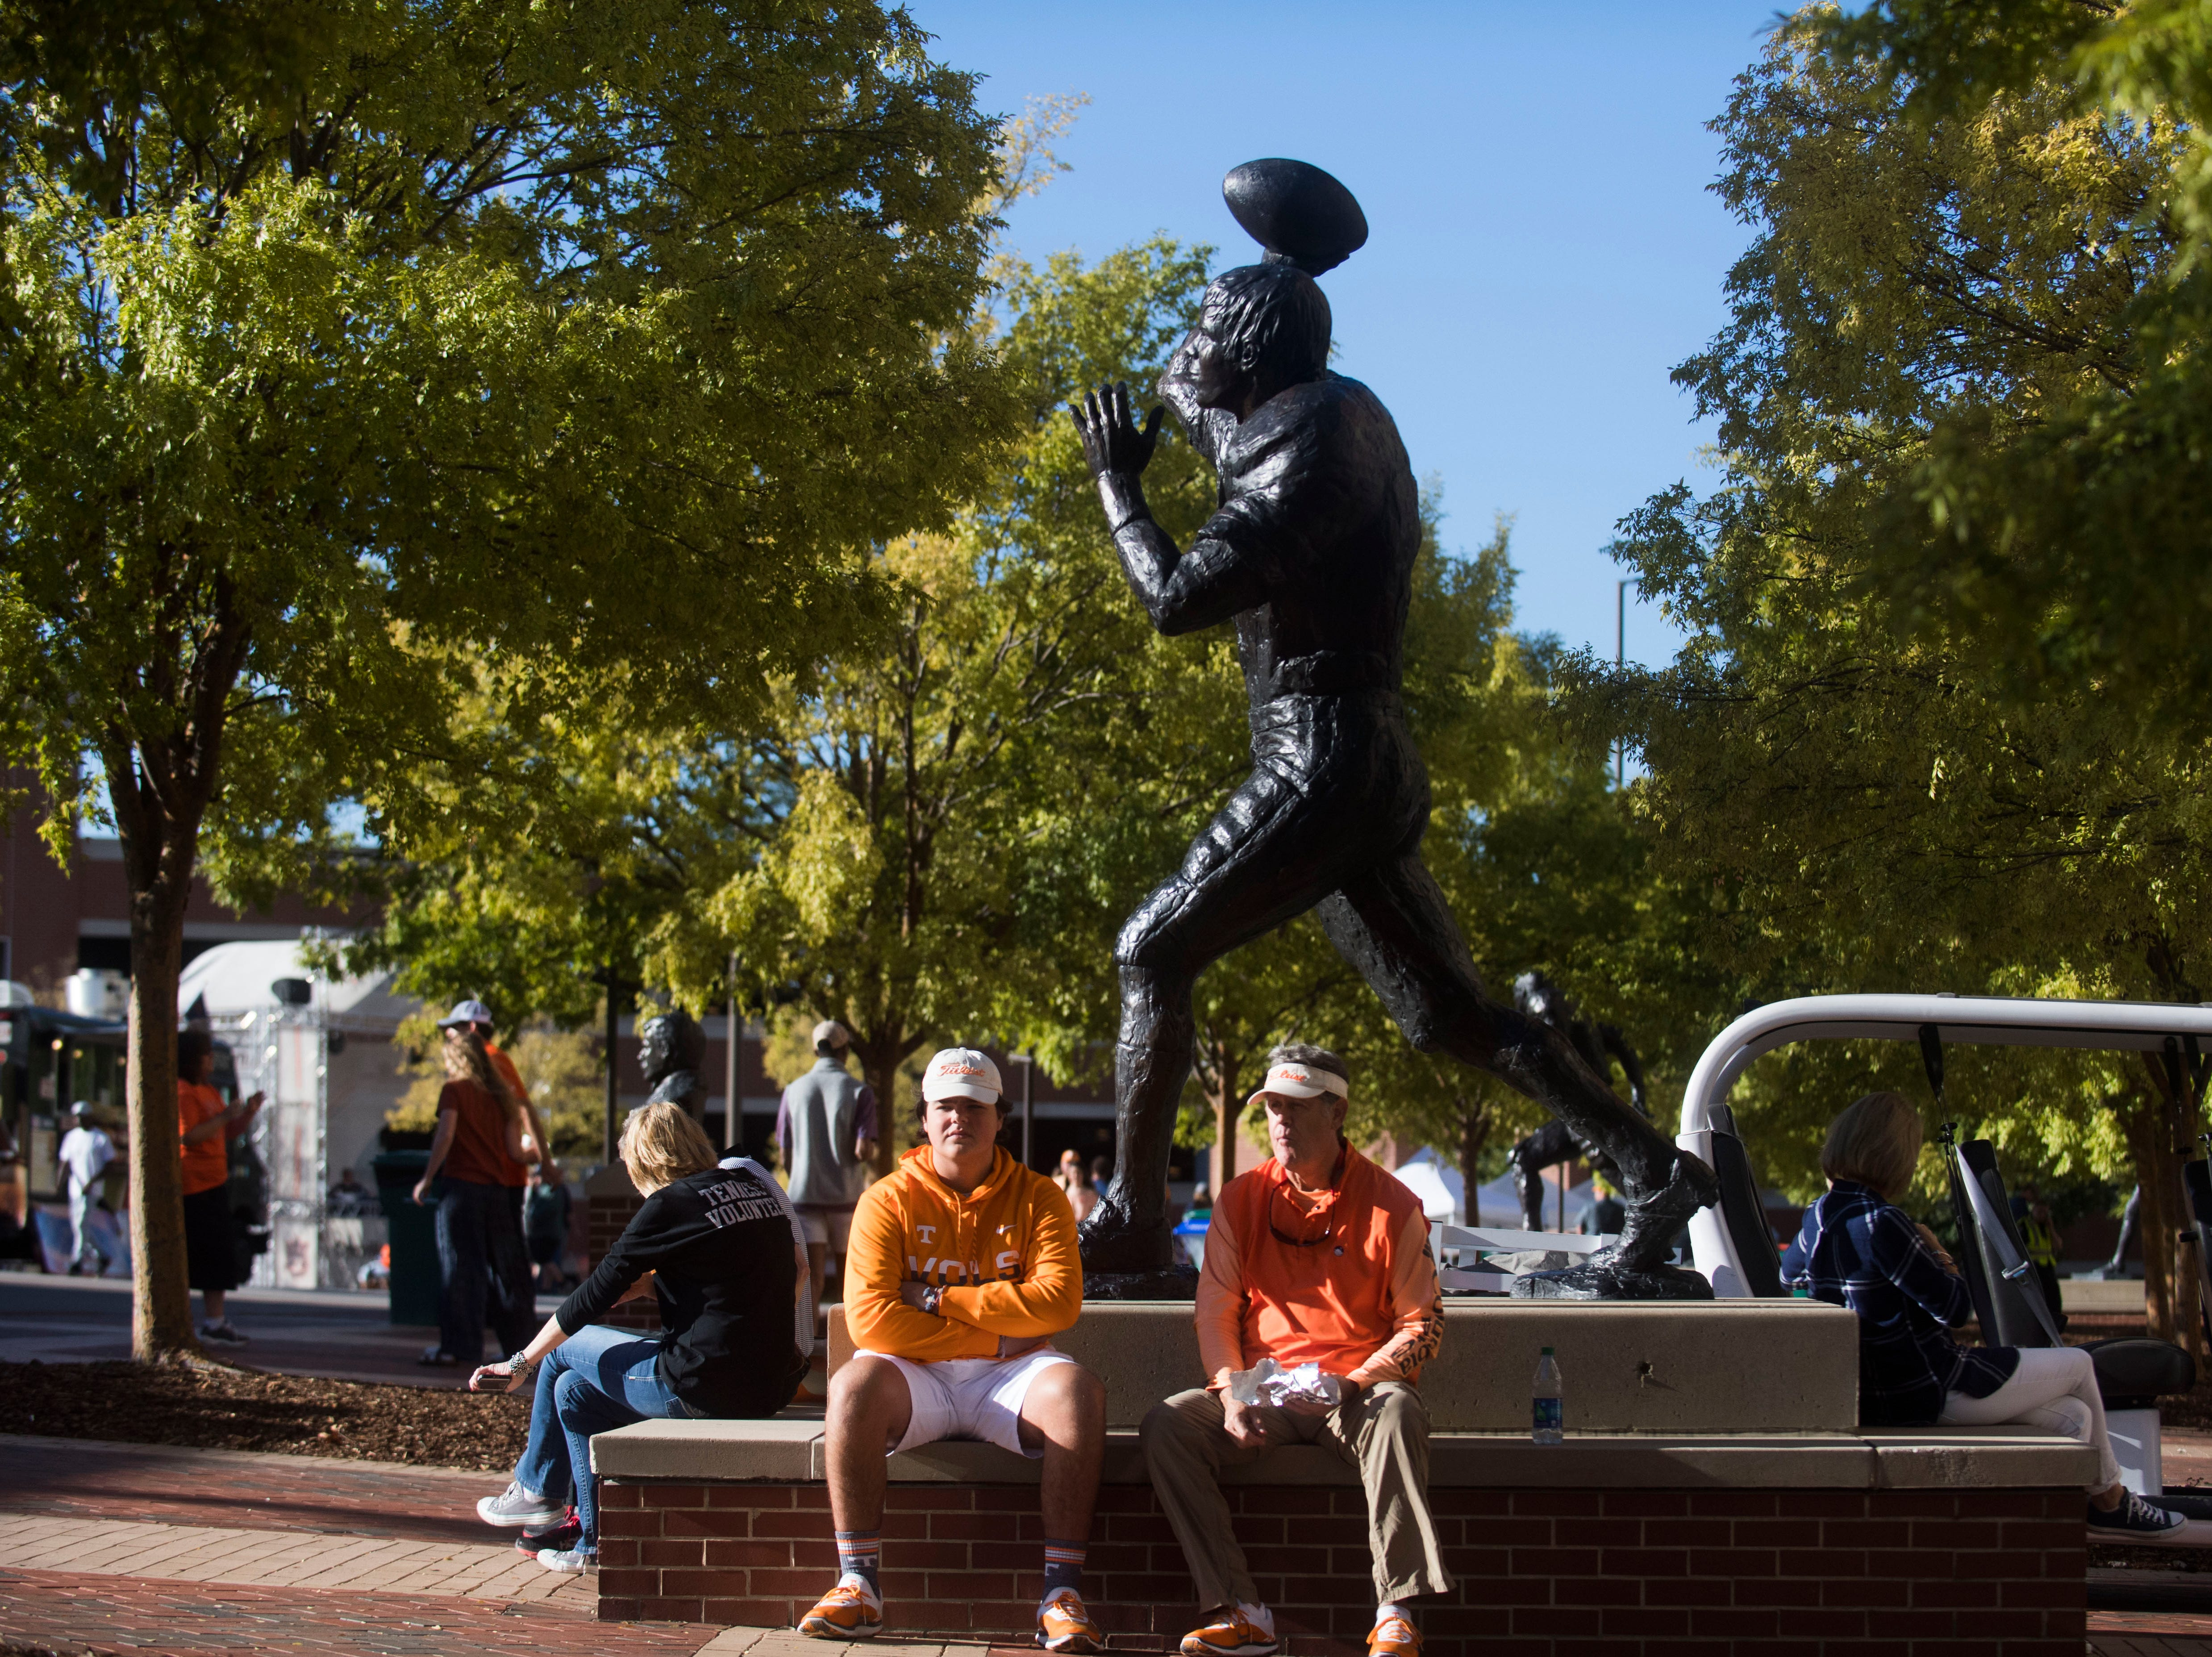 Vols fans sit next to a statue before a game between Tennessee and Auburn at Jordan-Hare Stadium in Auburn, Ala. Saturday, Oct. 13, 2018.